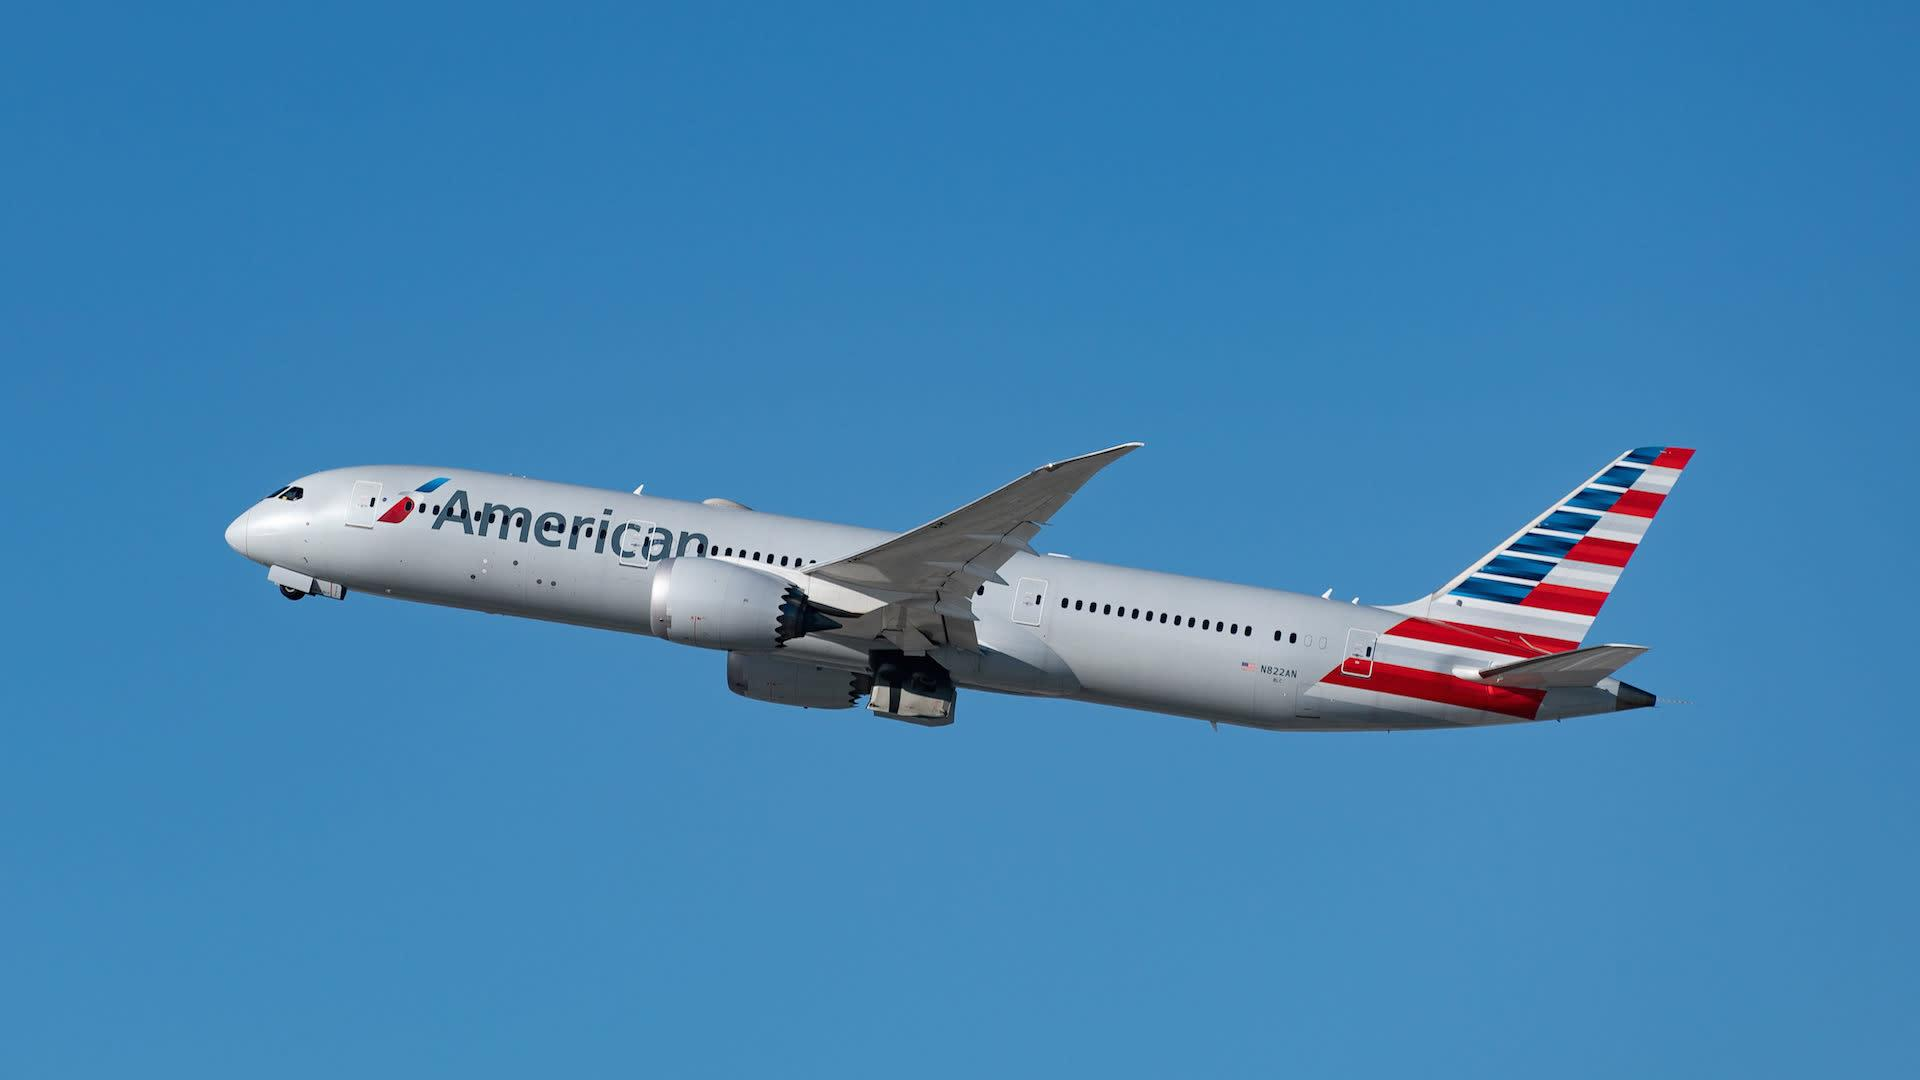 American Airlines Forced to Divert Flight After Women Use Racial Slurs and Spit on Passenger - Yahoo Entertainment